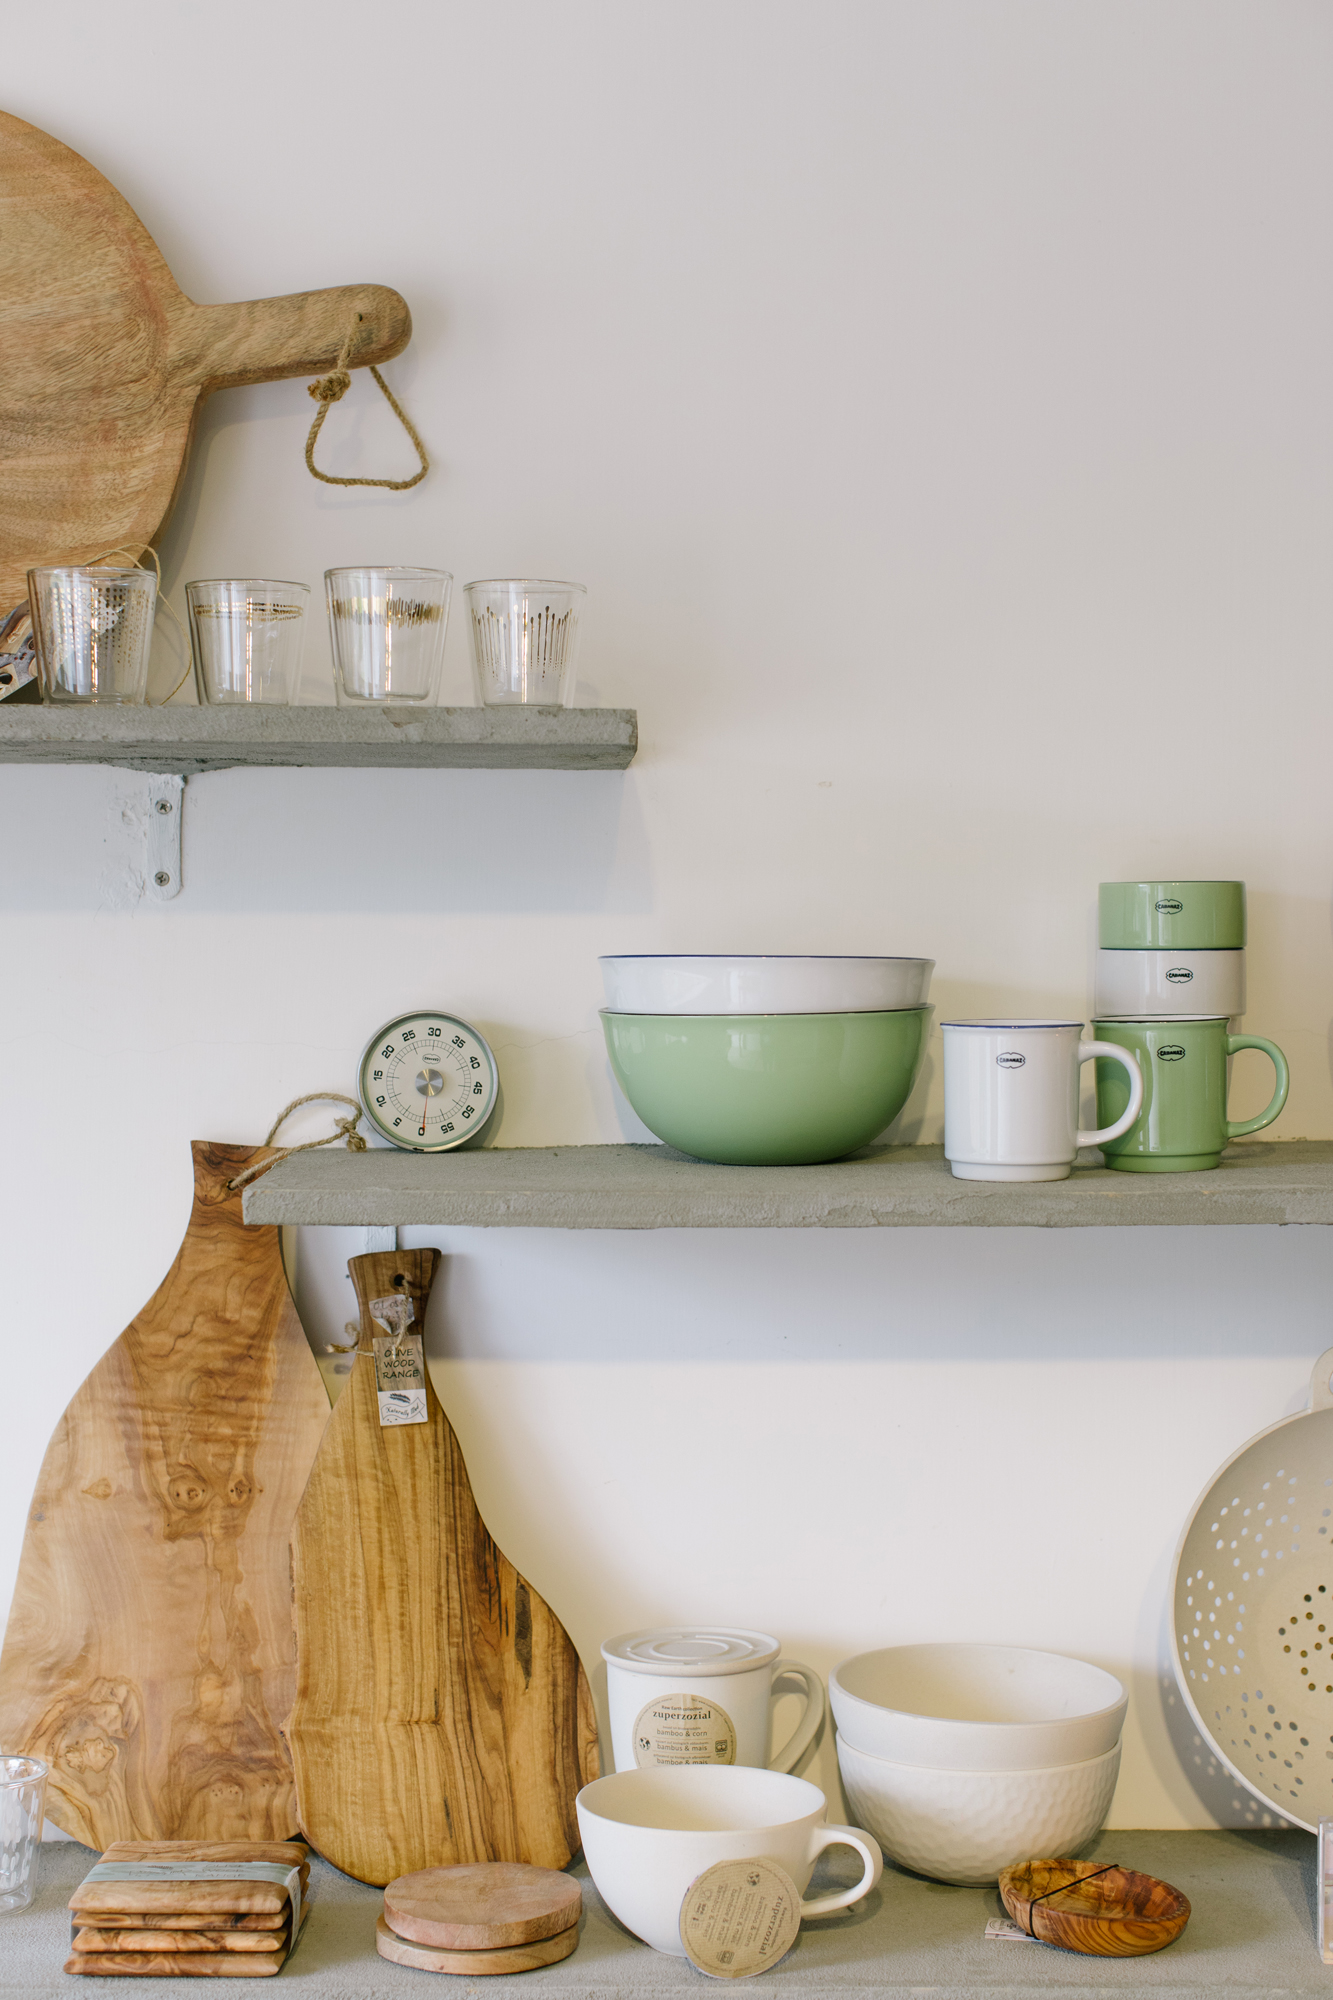 Store shelf displays at Pimary • interiors photographer in Hong Kong